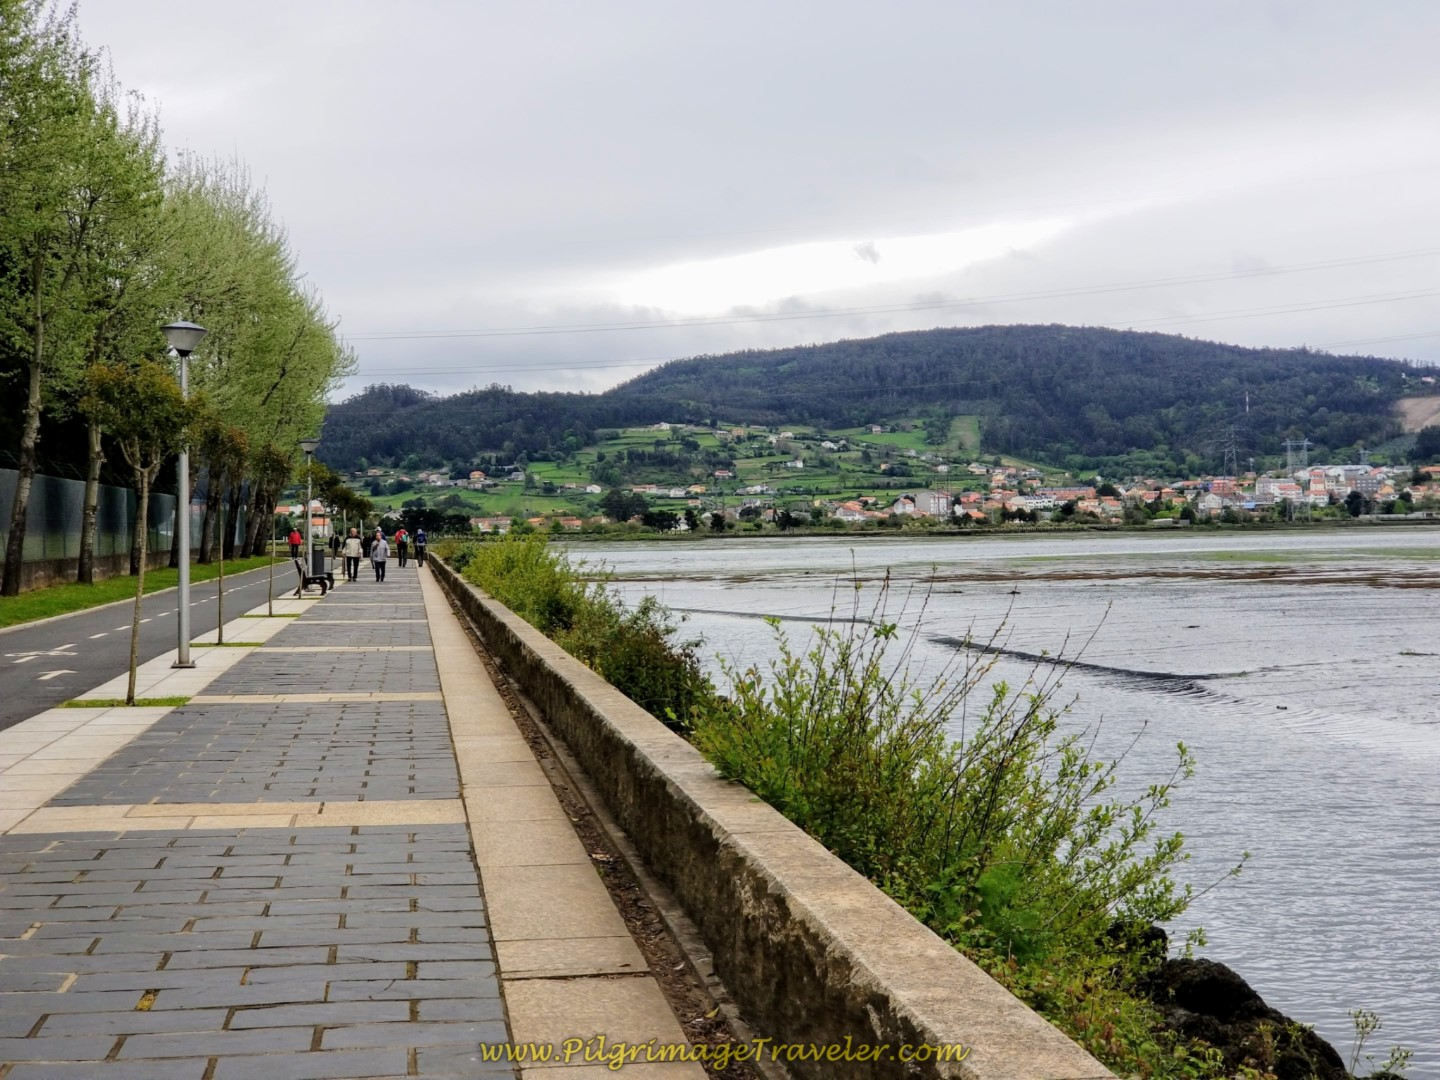 The Riverside Promenade Toward Neda on day one of the English Way